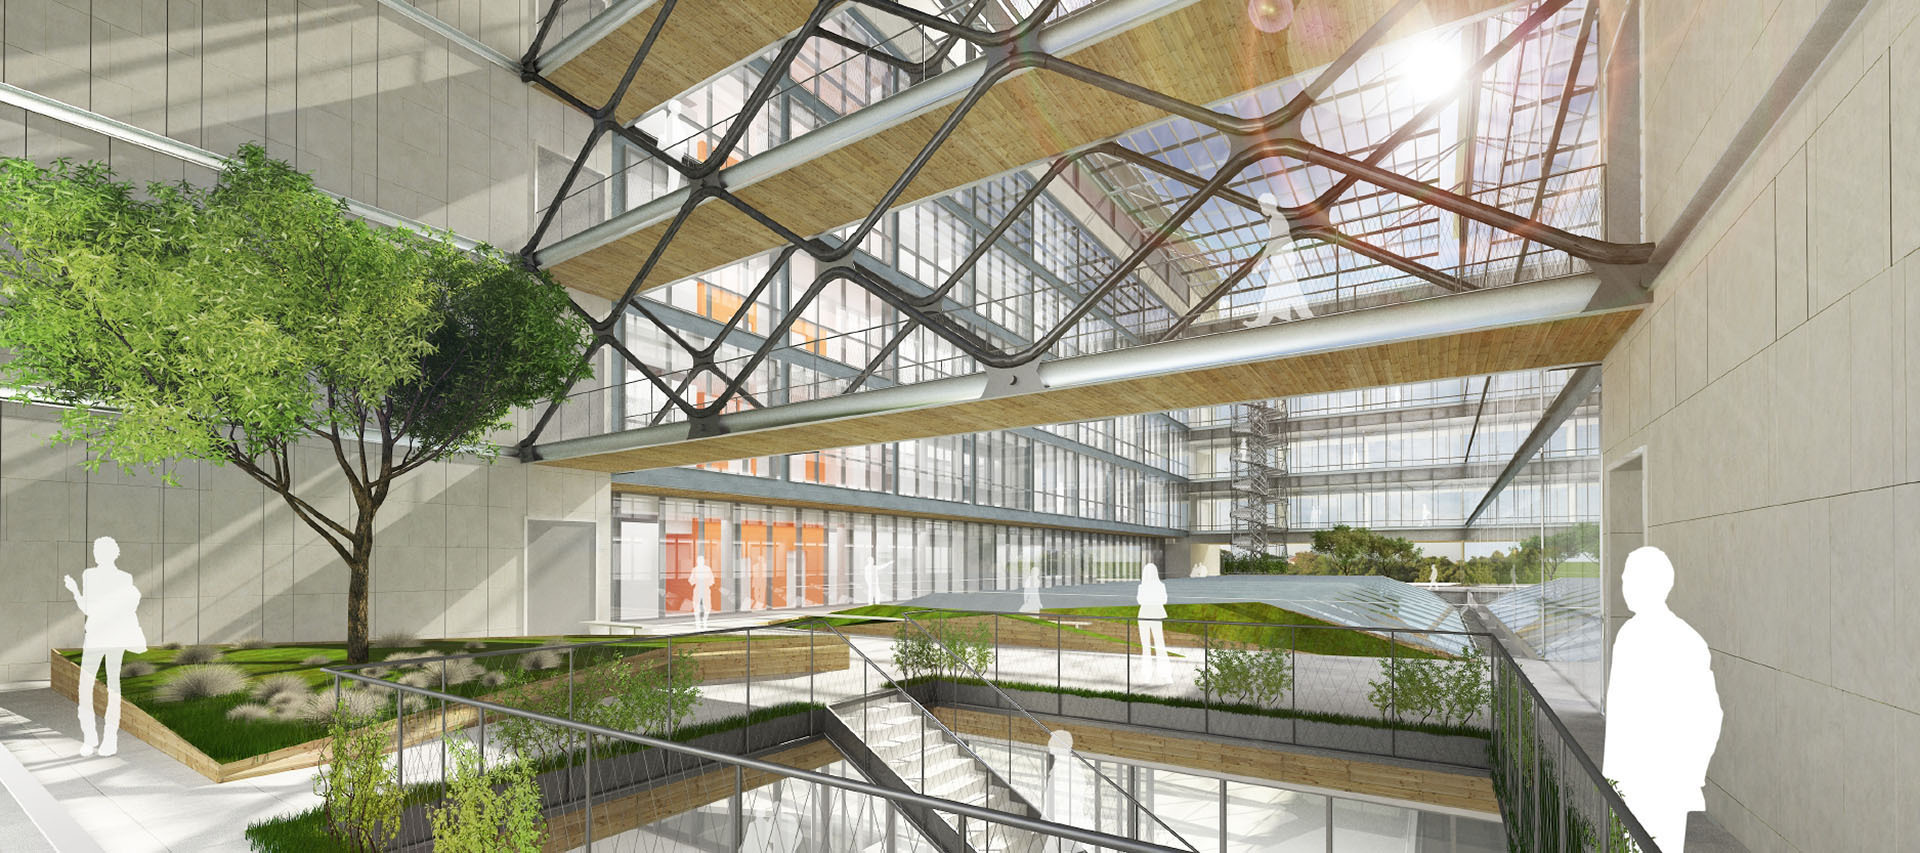 Gallery of Ennead Architects Reveals Designs for